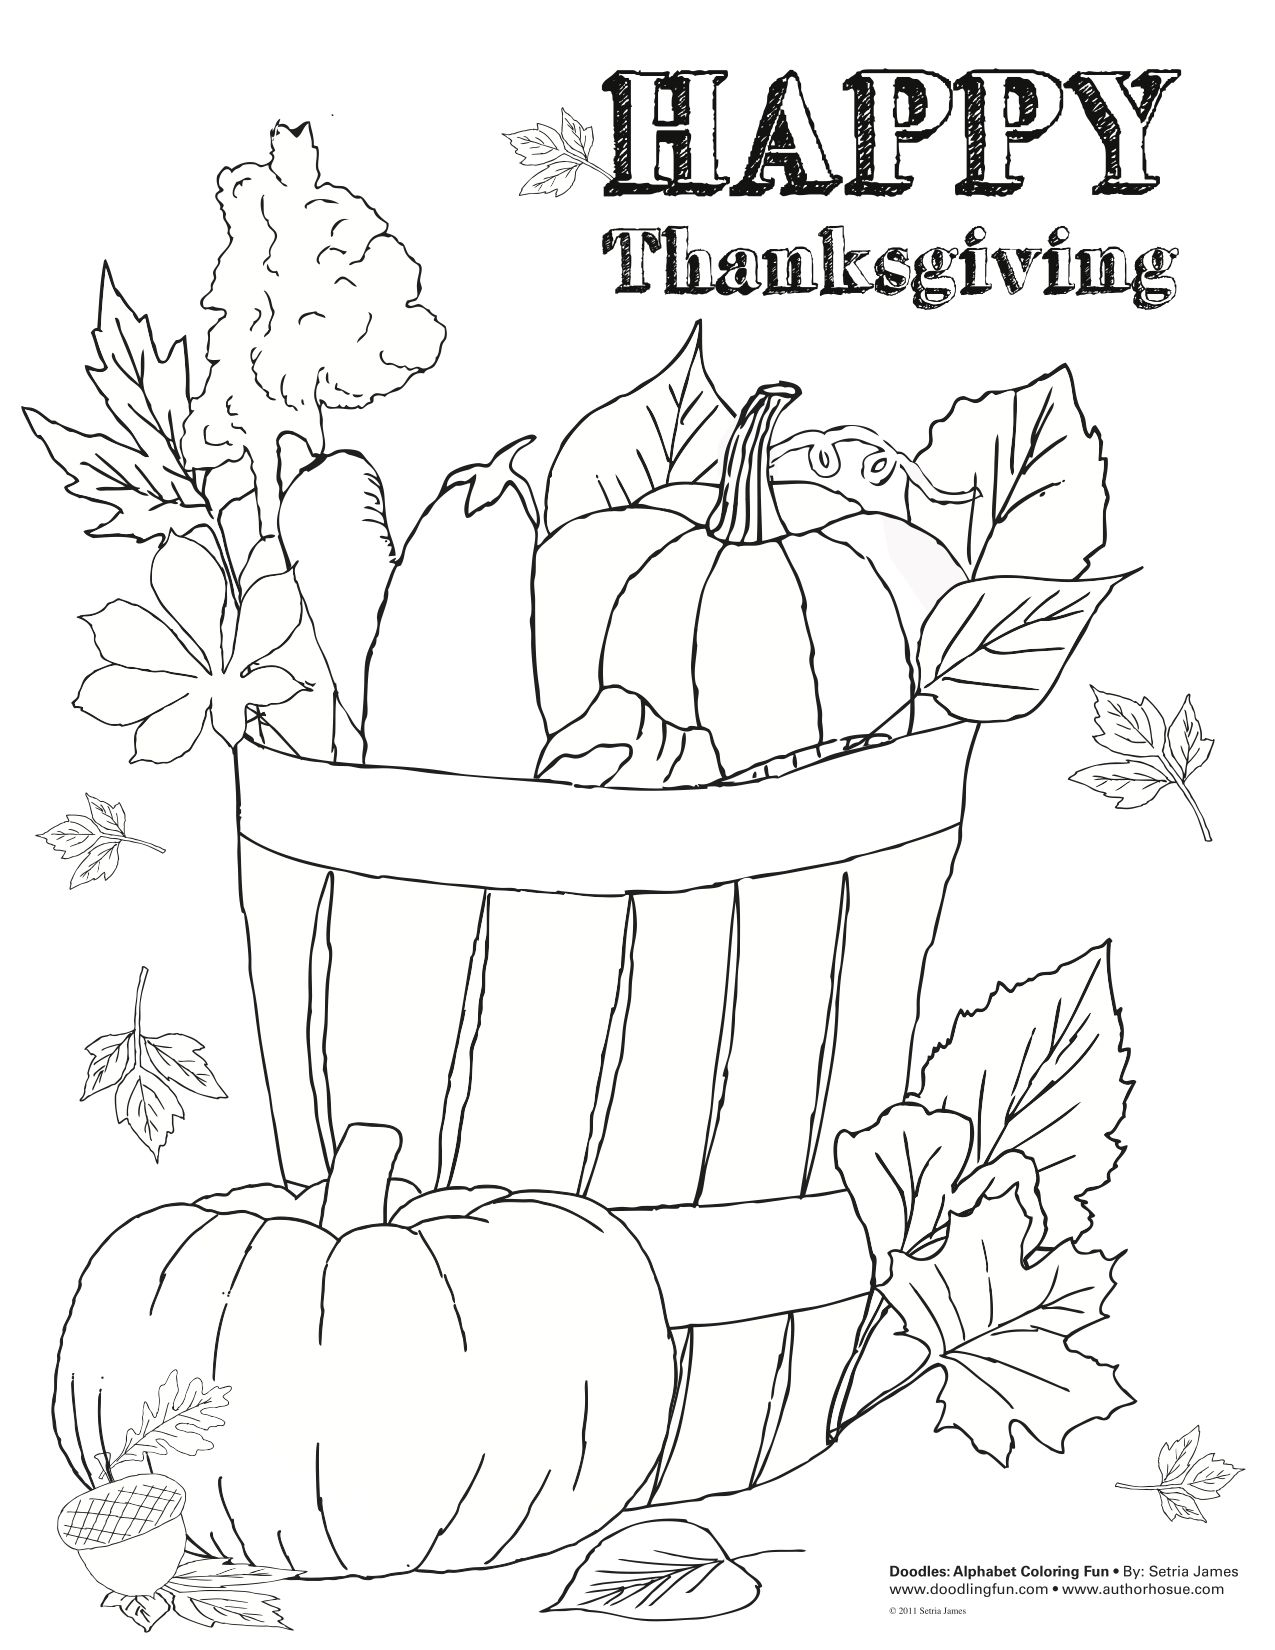 Thanksgiving Holiday Free Coloring Page Pumpkin Printable Fall Autumn Teacher